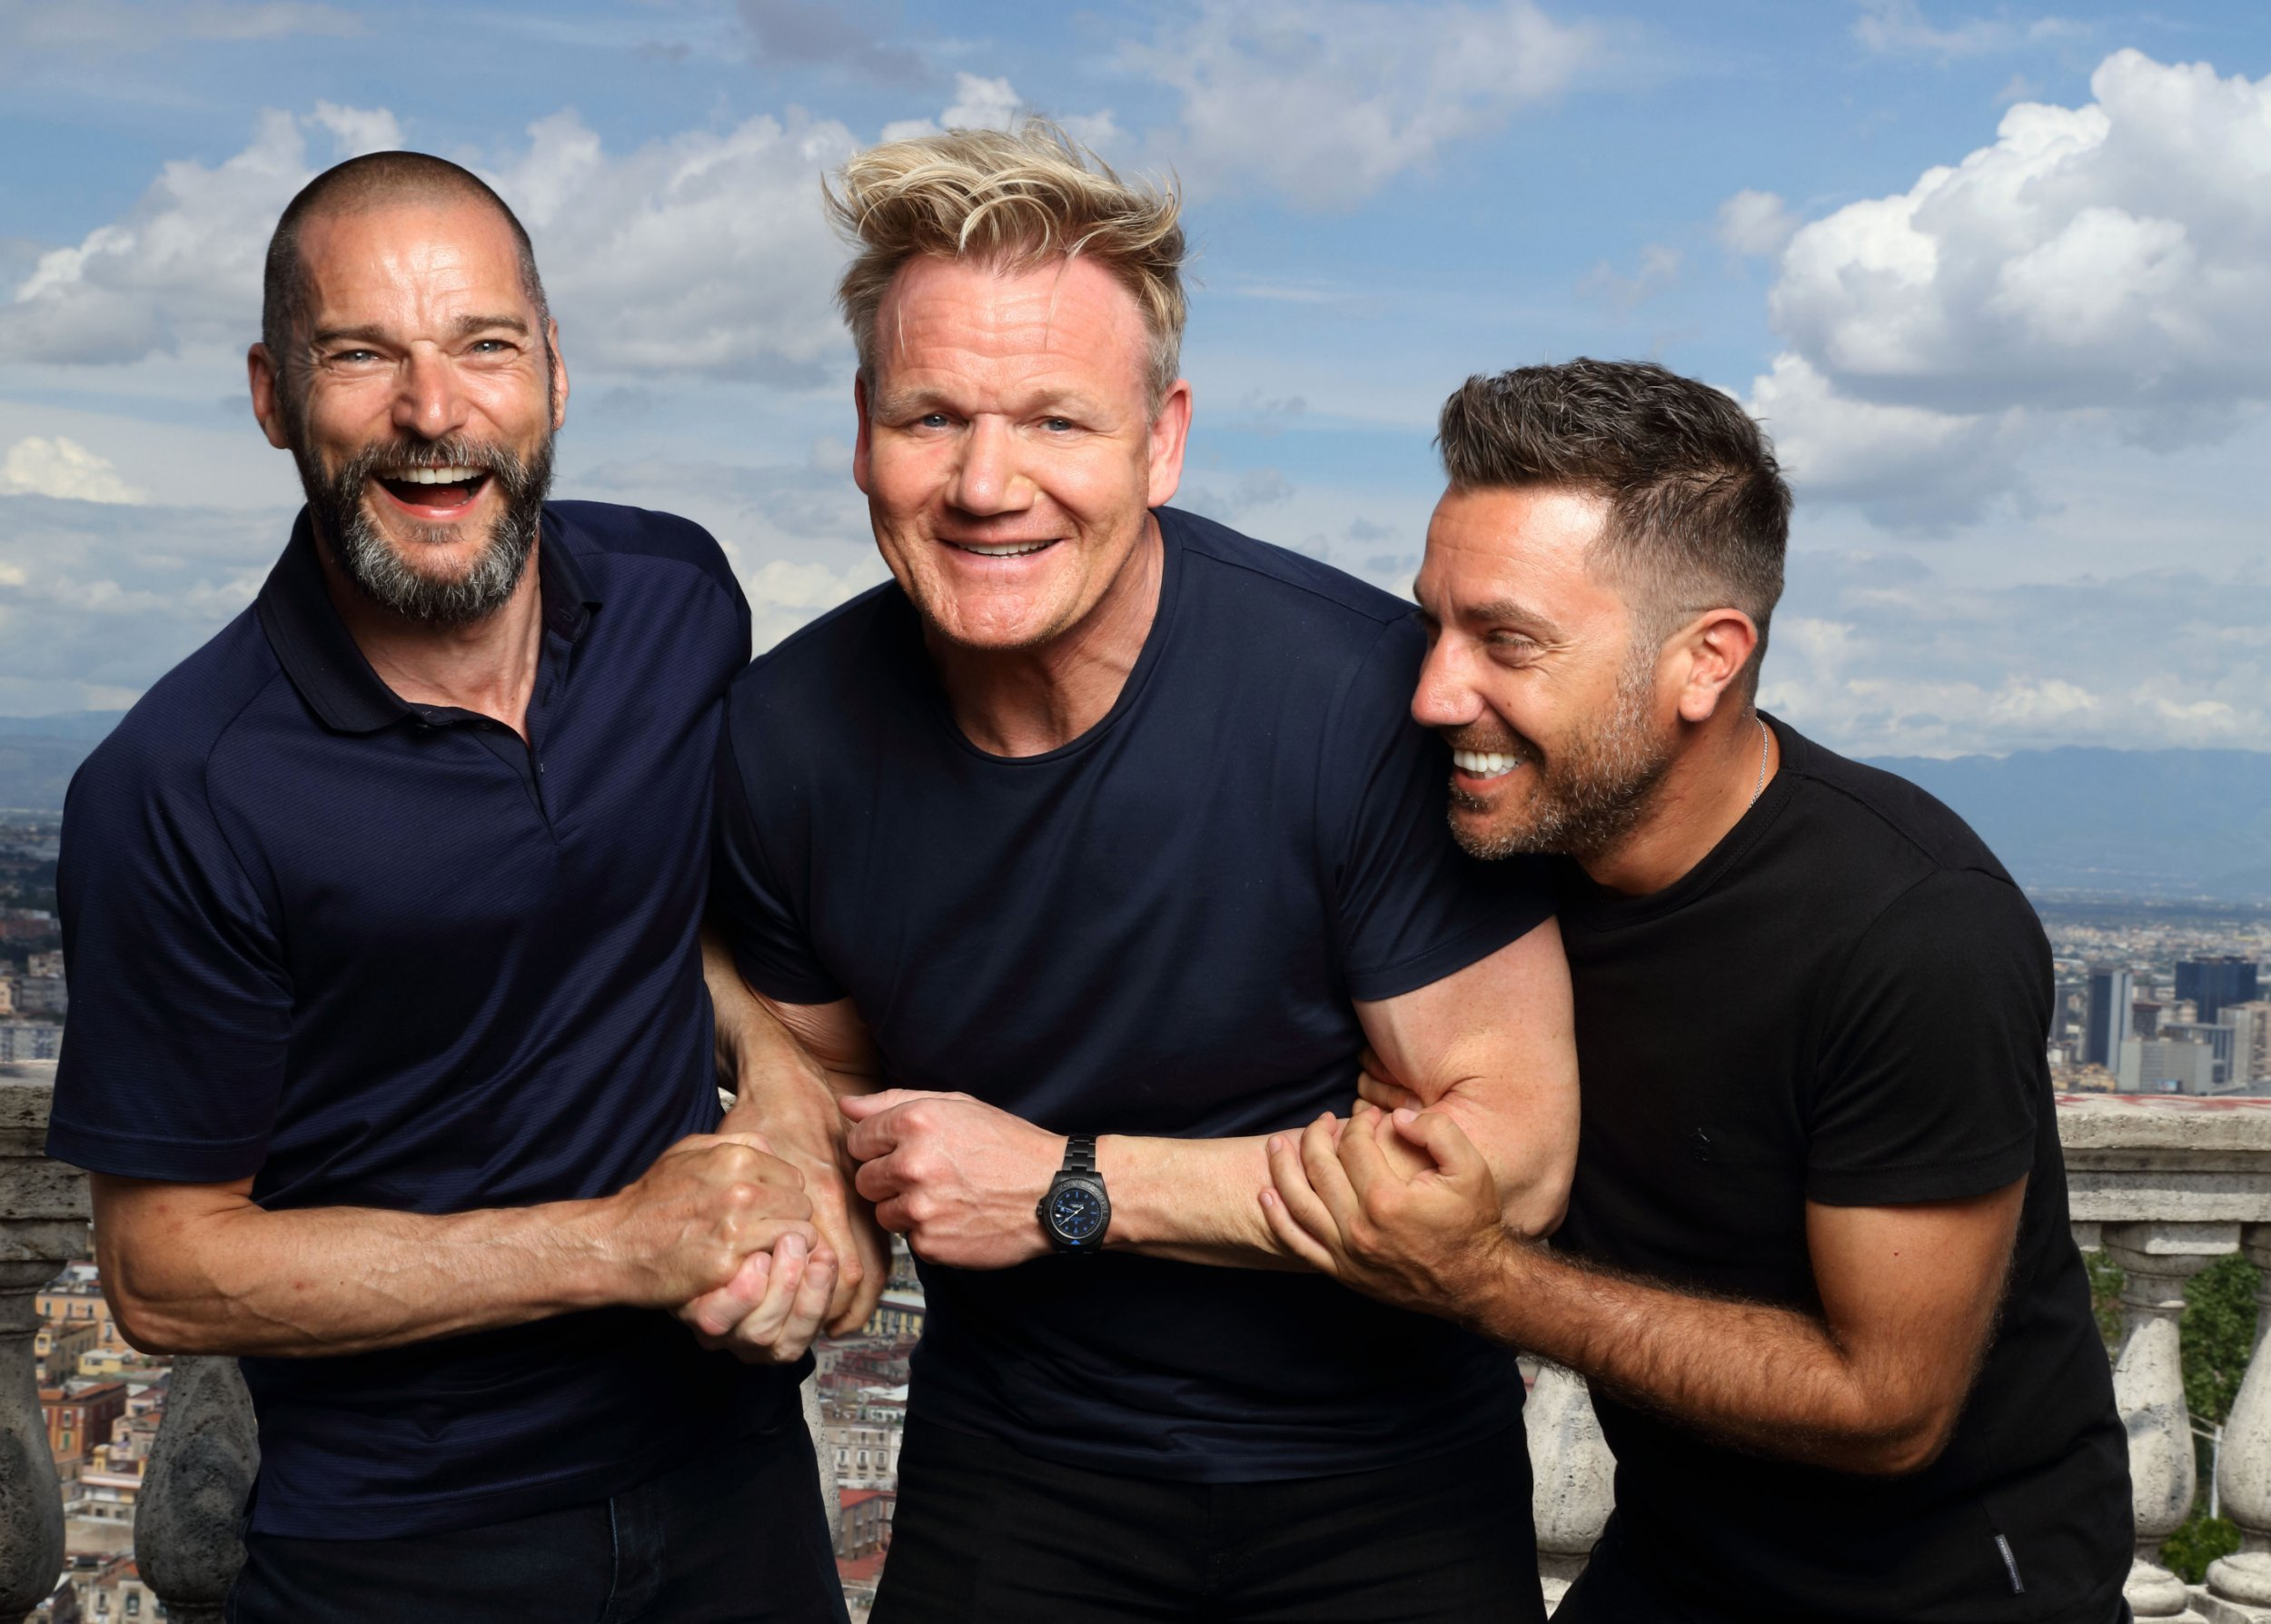 EMBARGOED PICTURE: FOR PUBLICATION FROM TUESDAY 2ND OCTOBER 2018 From Studio Ramsay GORDON, GINO AND FRED: ROADTRIP Ep1 The Italian Job Wednesday 10th October 2018 on ITV Pictured: Fred Sirieix, Gordon Ramsay and Gino D'Acampo in Naples Three big egos, one small van. Gordon, Gino and Fred pack up their camper van once again and head off on a European adventure, but this time it?s personal as each episode takes us on a tour of their cherished homelands, each of them with a special occasion to prepare for. With three countries, three weeks and three coqs au vin in close confinement what could possibly go wrong? In episode one, Gordon, Gino and Fred start their road trip in Gino?s homeland of Italy, where Gino needs help to pull off an event that is close to his heart. His best friend?s vow renewal ceremony is taking place in front of 50 guests, in just four days? time. ? ITV Photographer: Tony Ward For further information please contact Peter Gray 0207 157 3046 peter.gray@itv.com This photograph is ? ITV and can only be reproduced for editorial purposes directly in connection with the programme GORDON, GINO AND FRED: ROADTRIP or ITV. Once made available by the ITV Picture Desk, this photograph can be reproduced once only up until the Transmission date and no reproduction fee will be charged. Any subsequent usage may incur a fee. This photograph must not be syndicated to any other publication or website, or permanently archived, without the express written permission of ITV Picture Desk. Full Terms and conditions are available on the website www.itvpictures.com